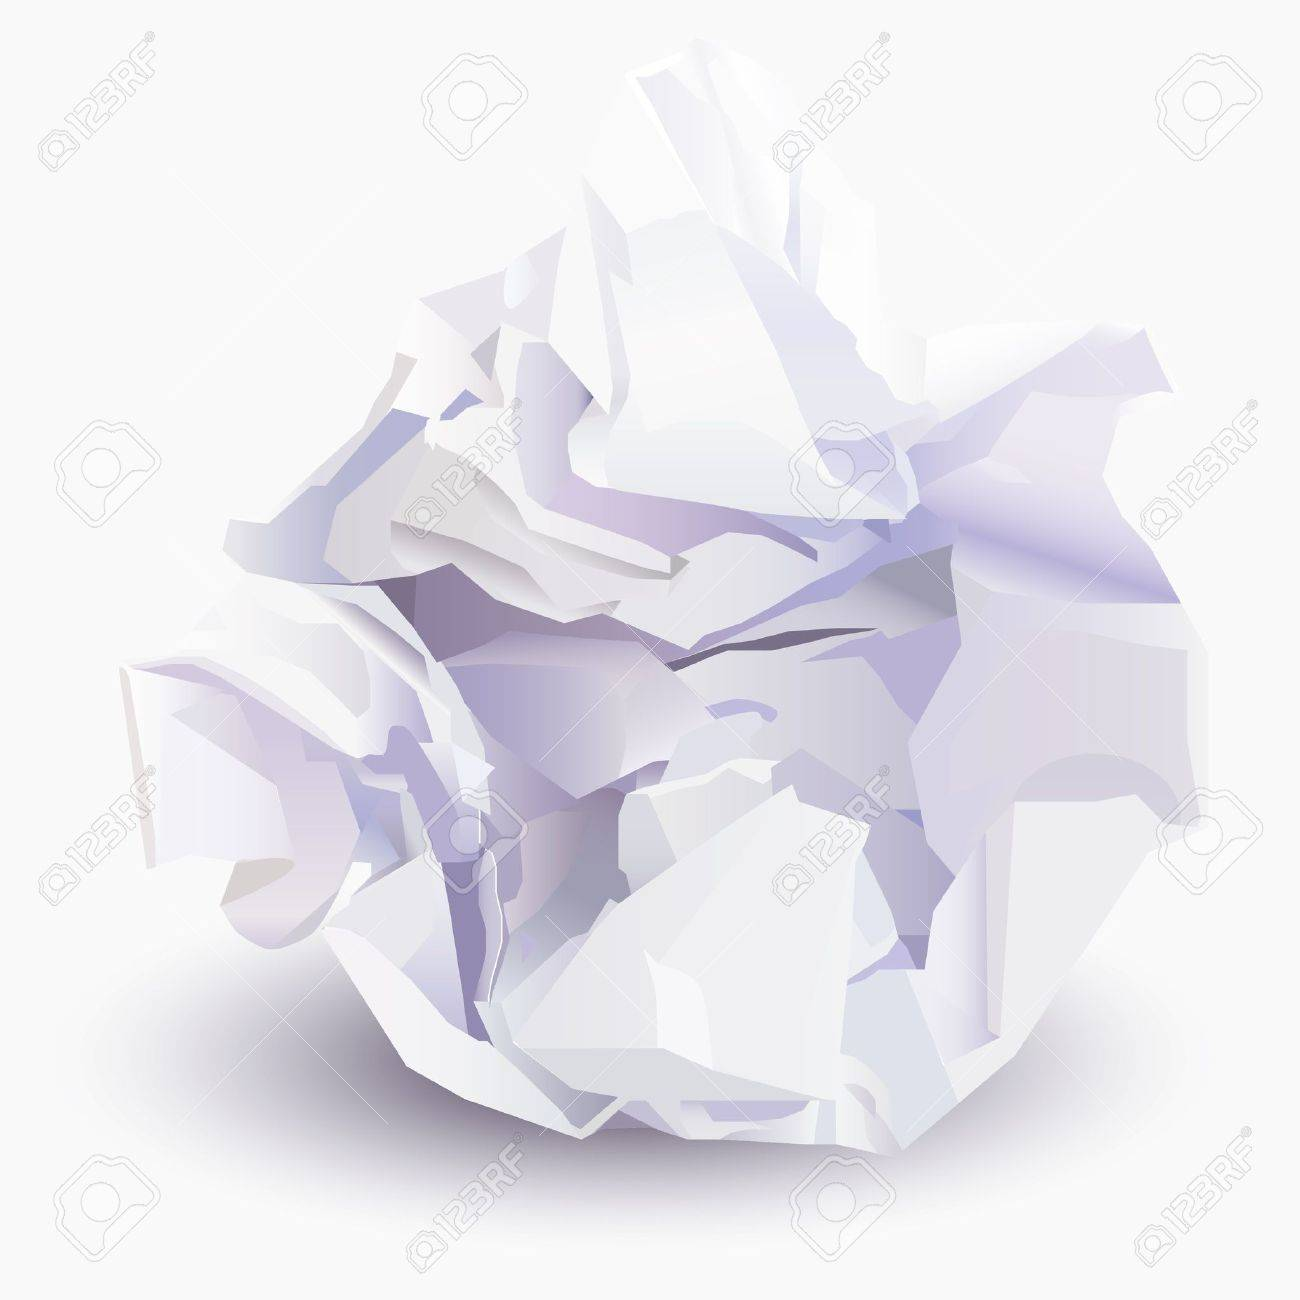 crumpled sheet of paper to paper ball, vector illustration royalty